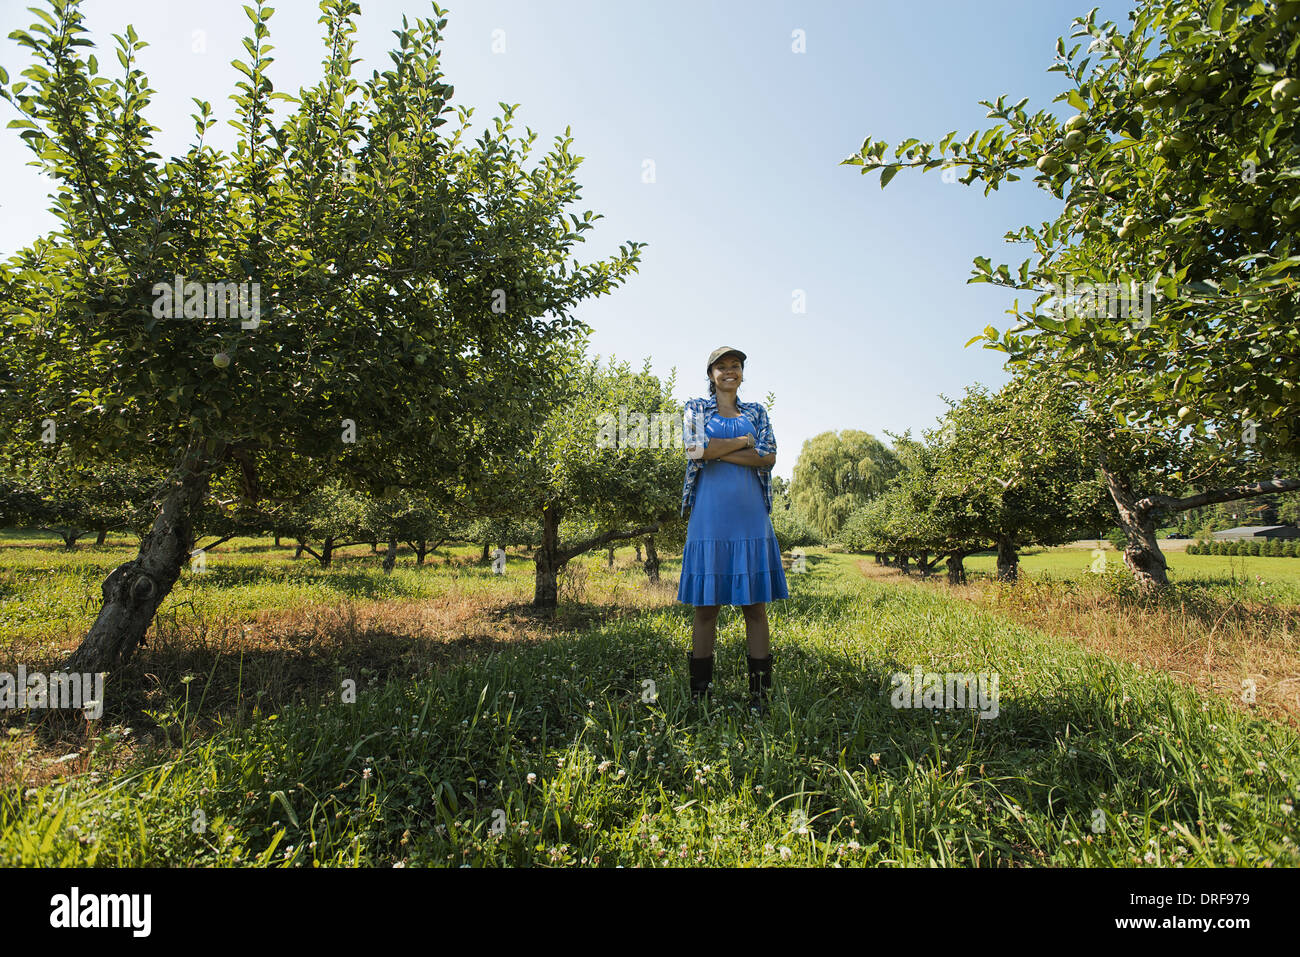 New York state USA woman picking apples in an orchard of fruit trees - Stock Image